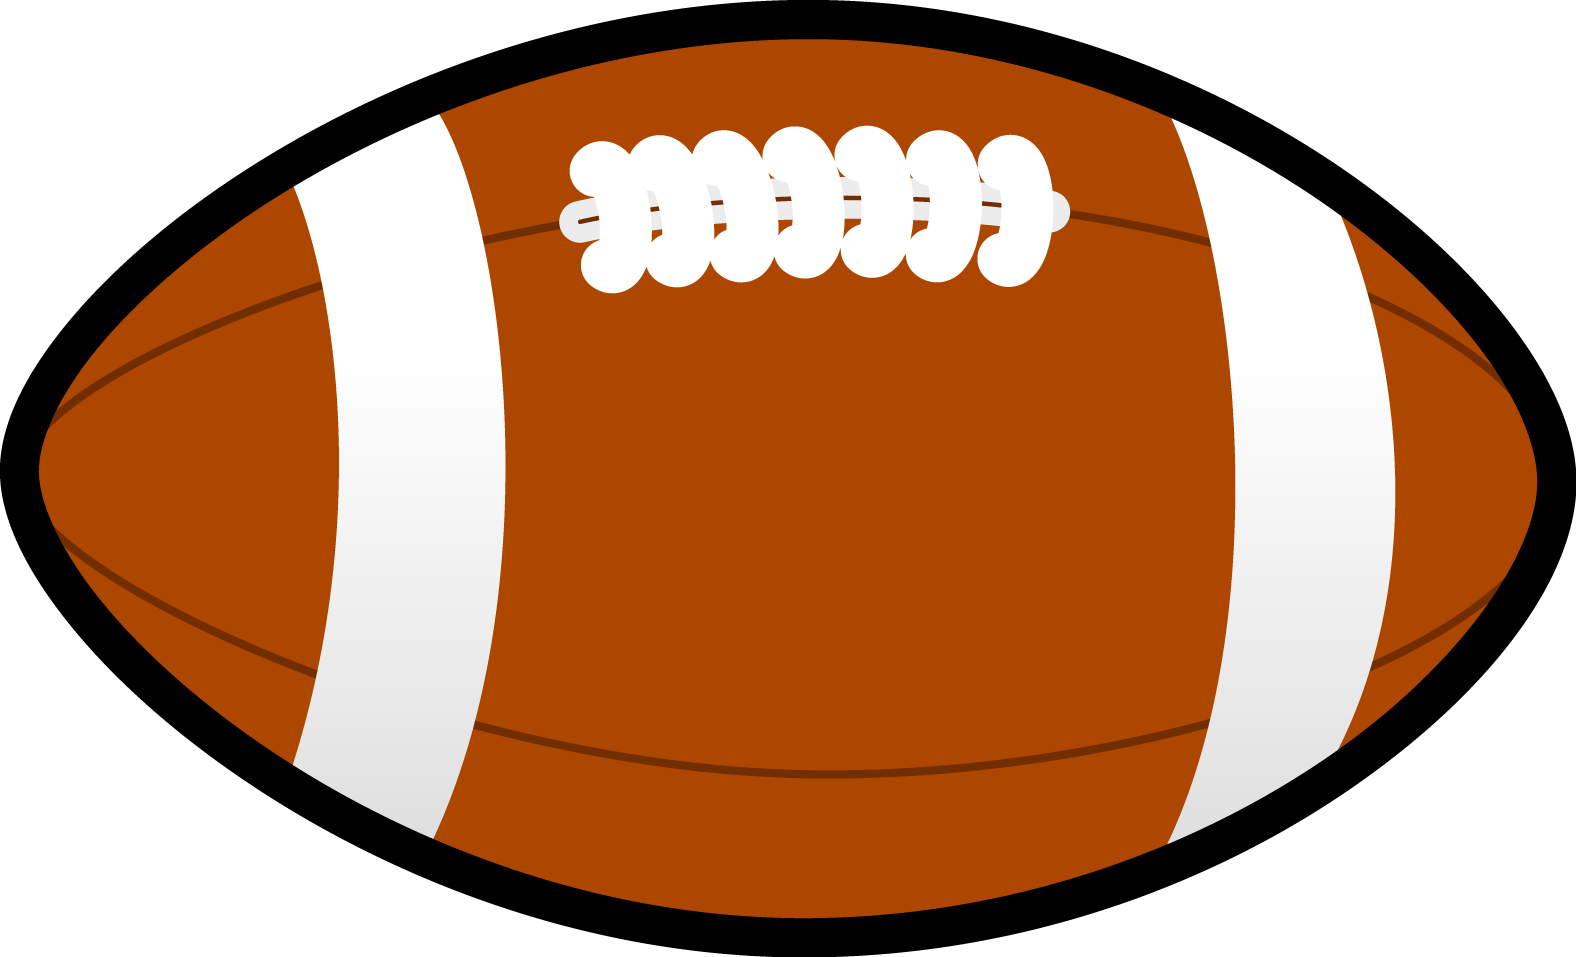 American football clipart images Transparent pictures on F.